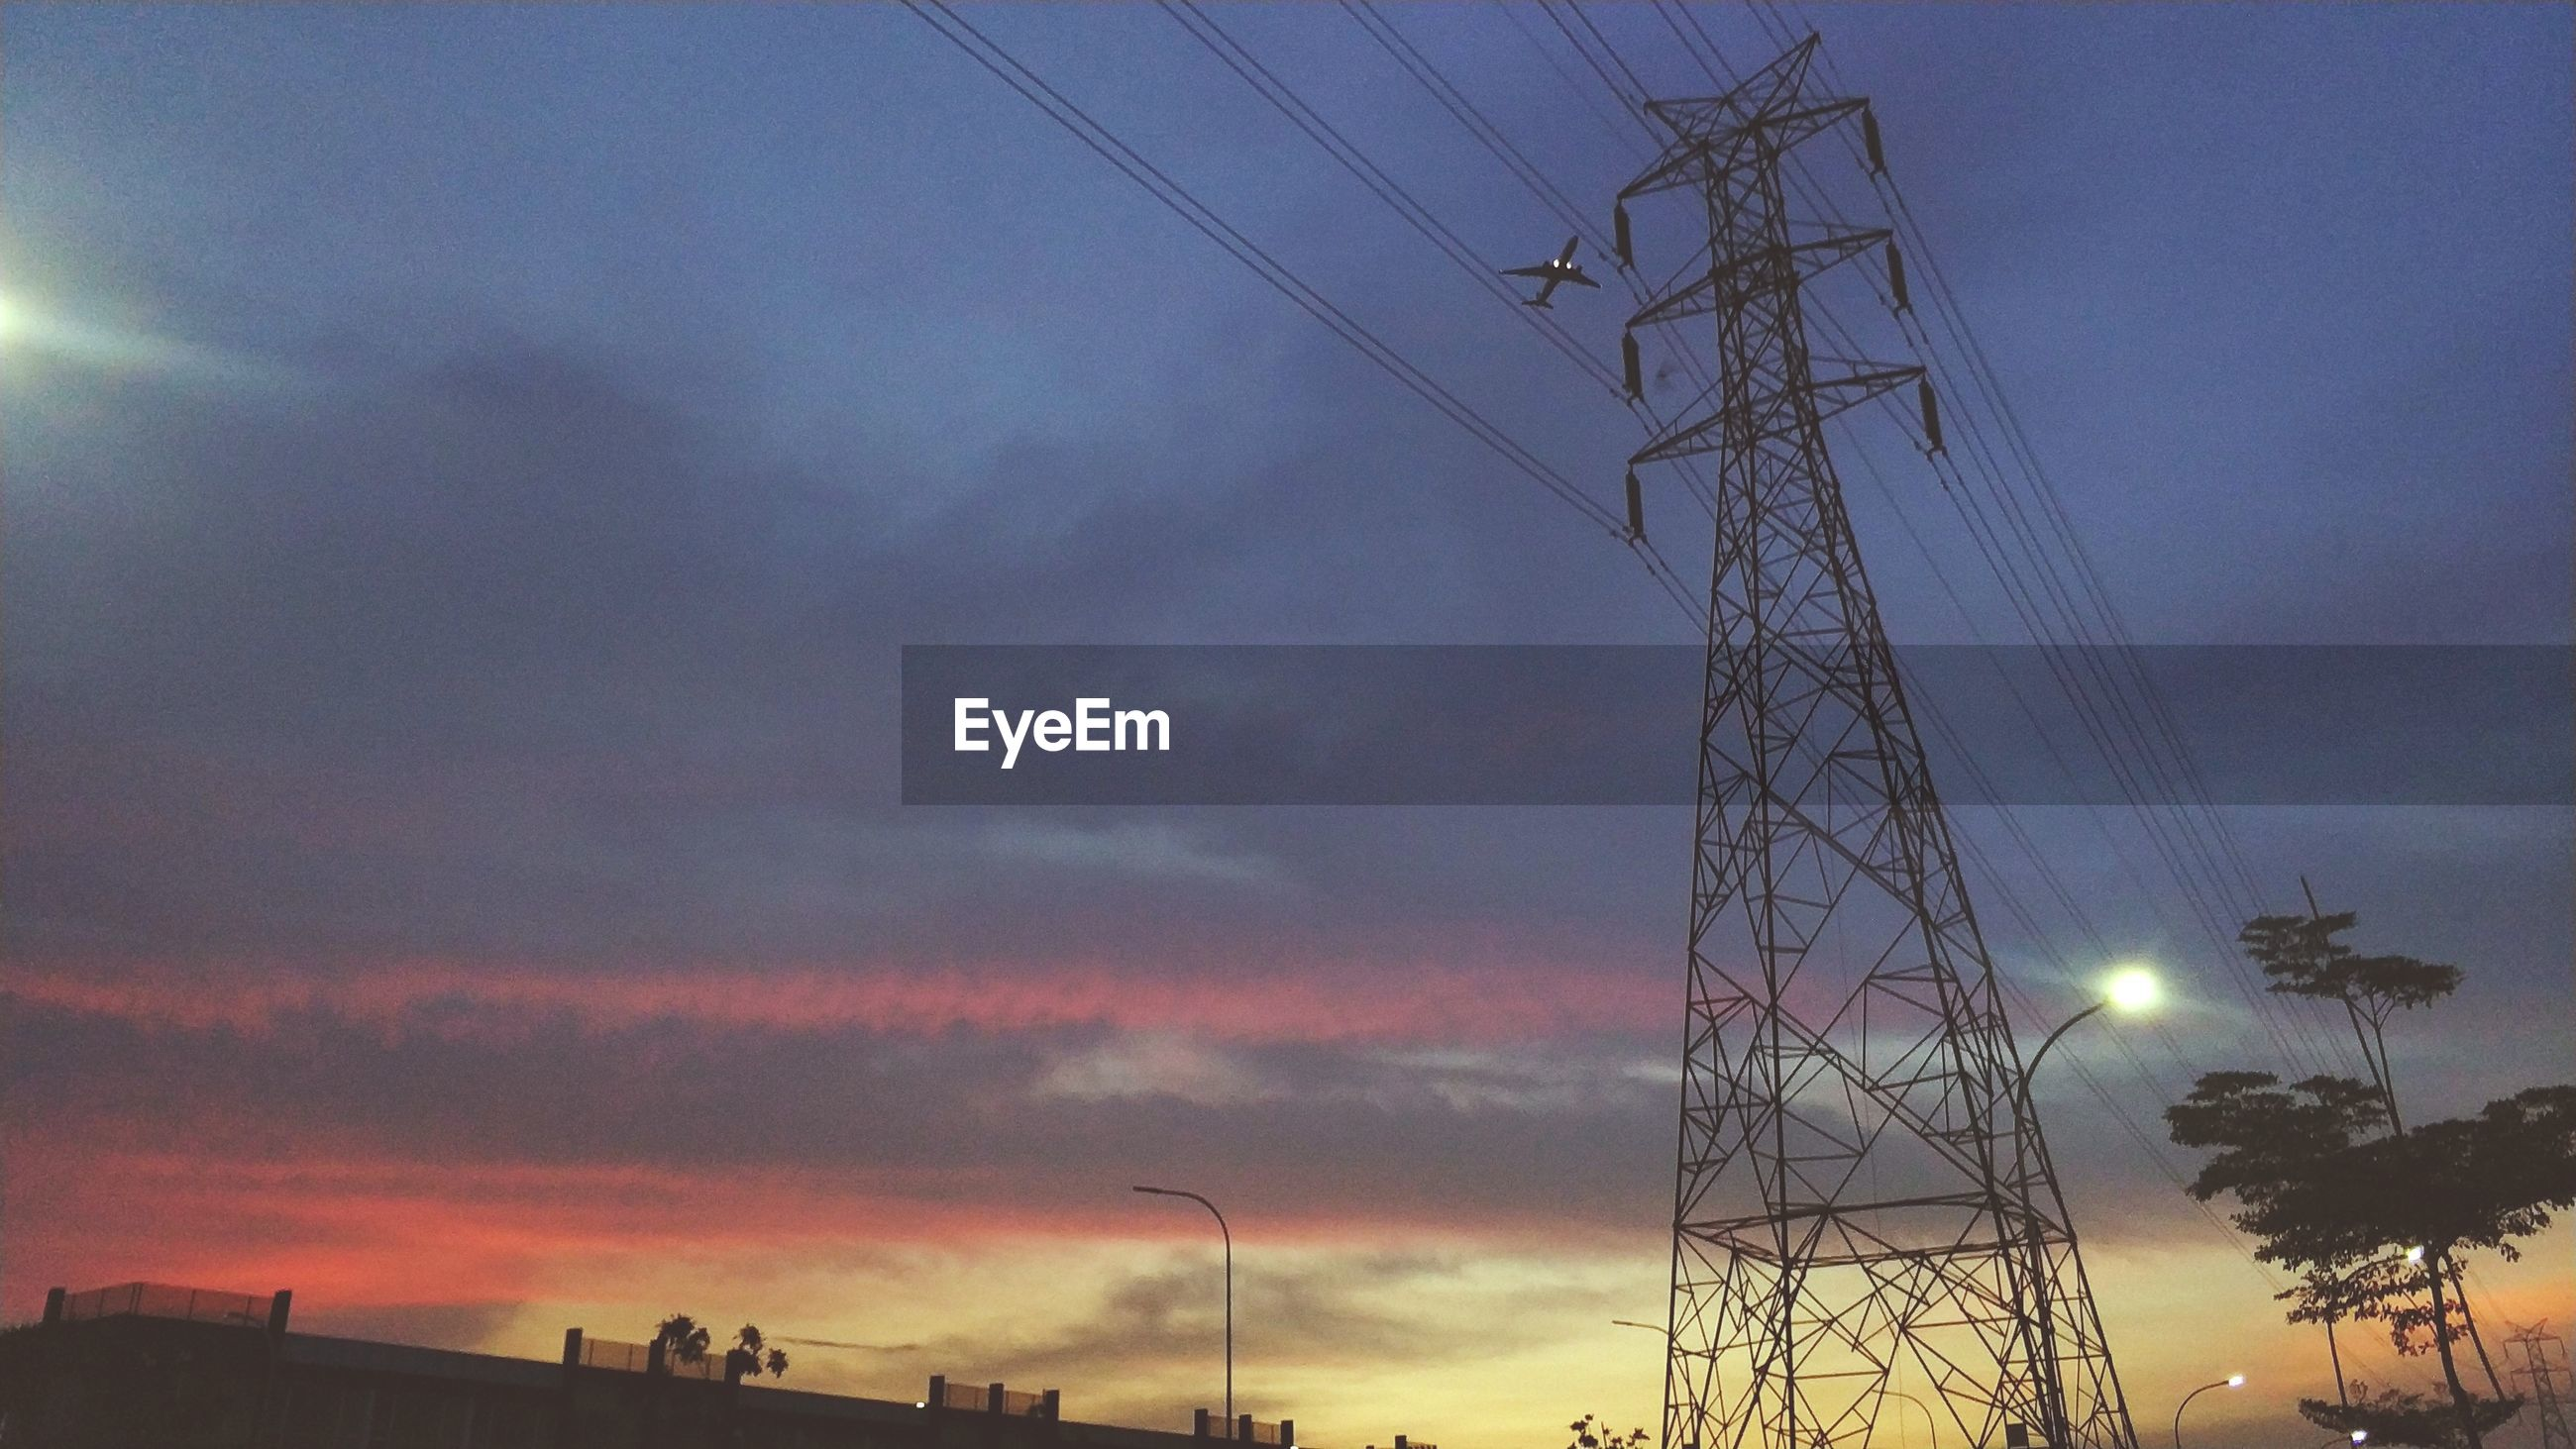 Low angle view of electricity pylon against cloudy sky during sunset